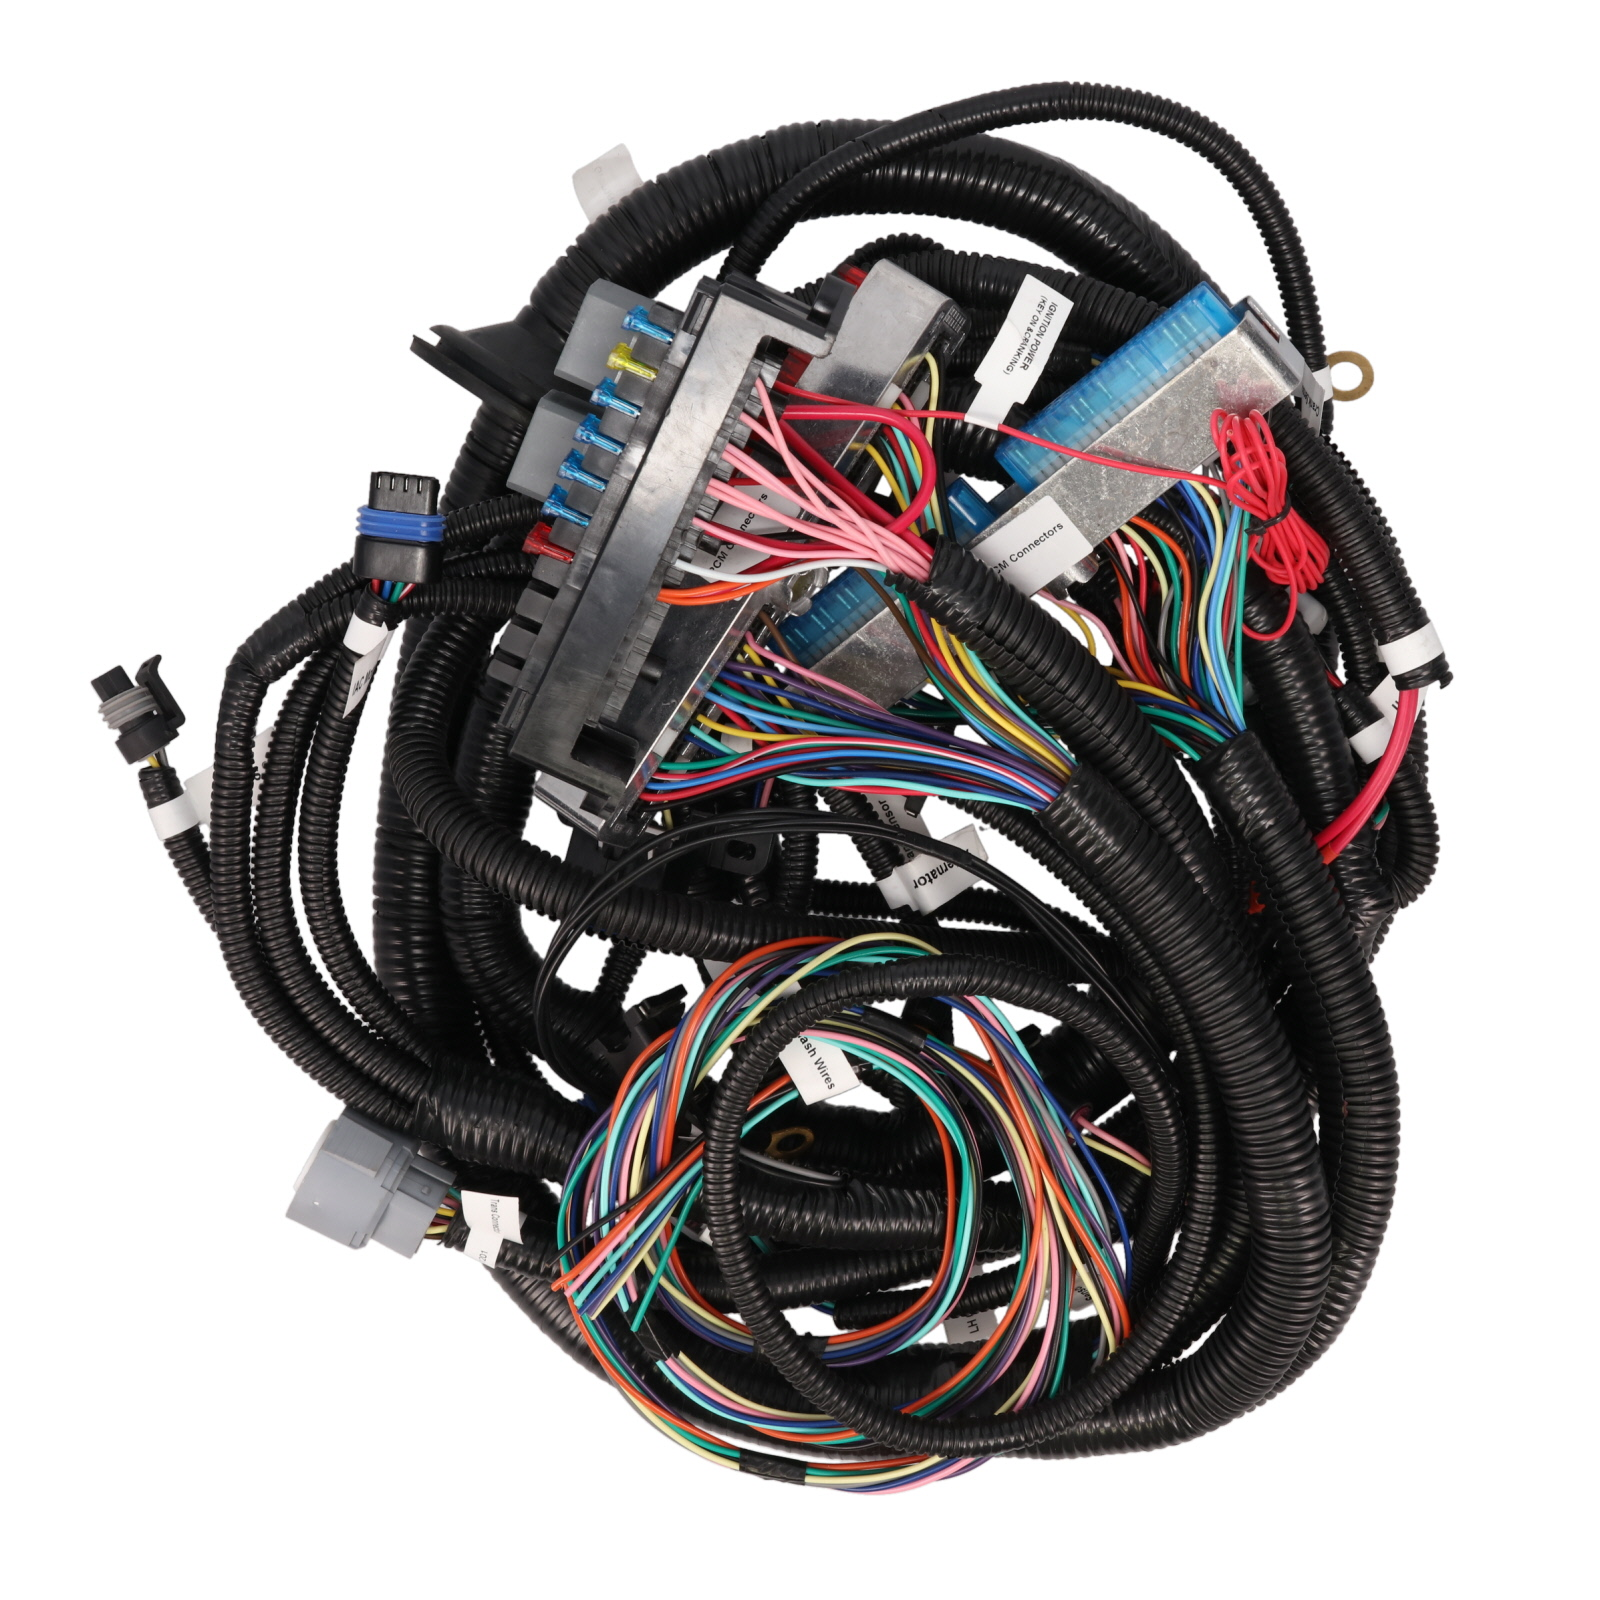 Ls1 Standalone Wiring Harness For Sale